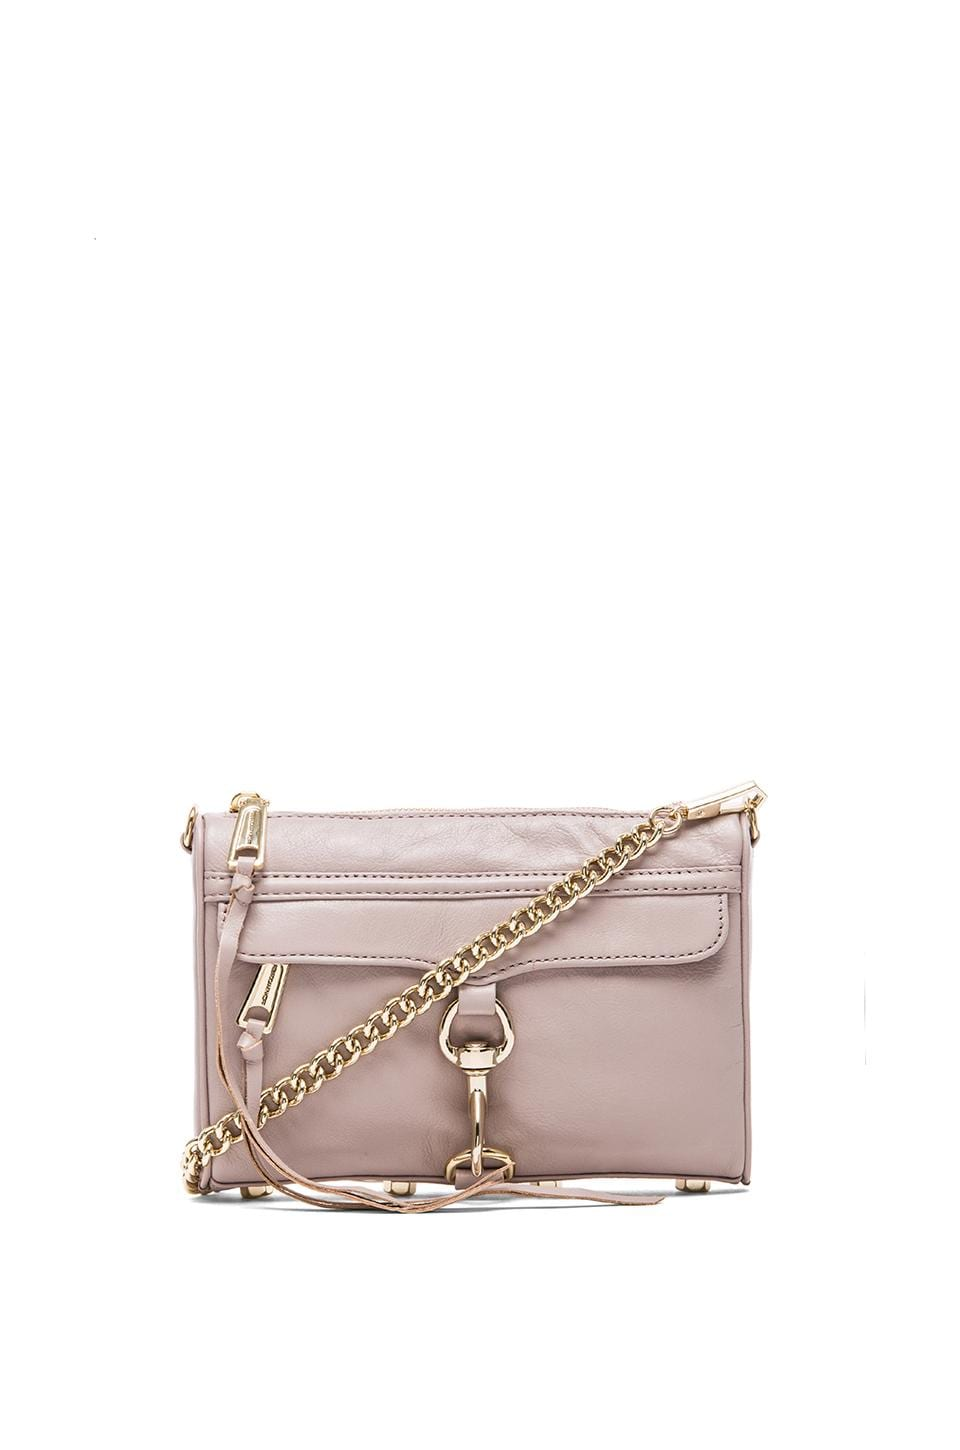 Rebecca Minkoff Mini MAC in Tortora